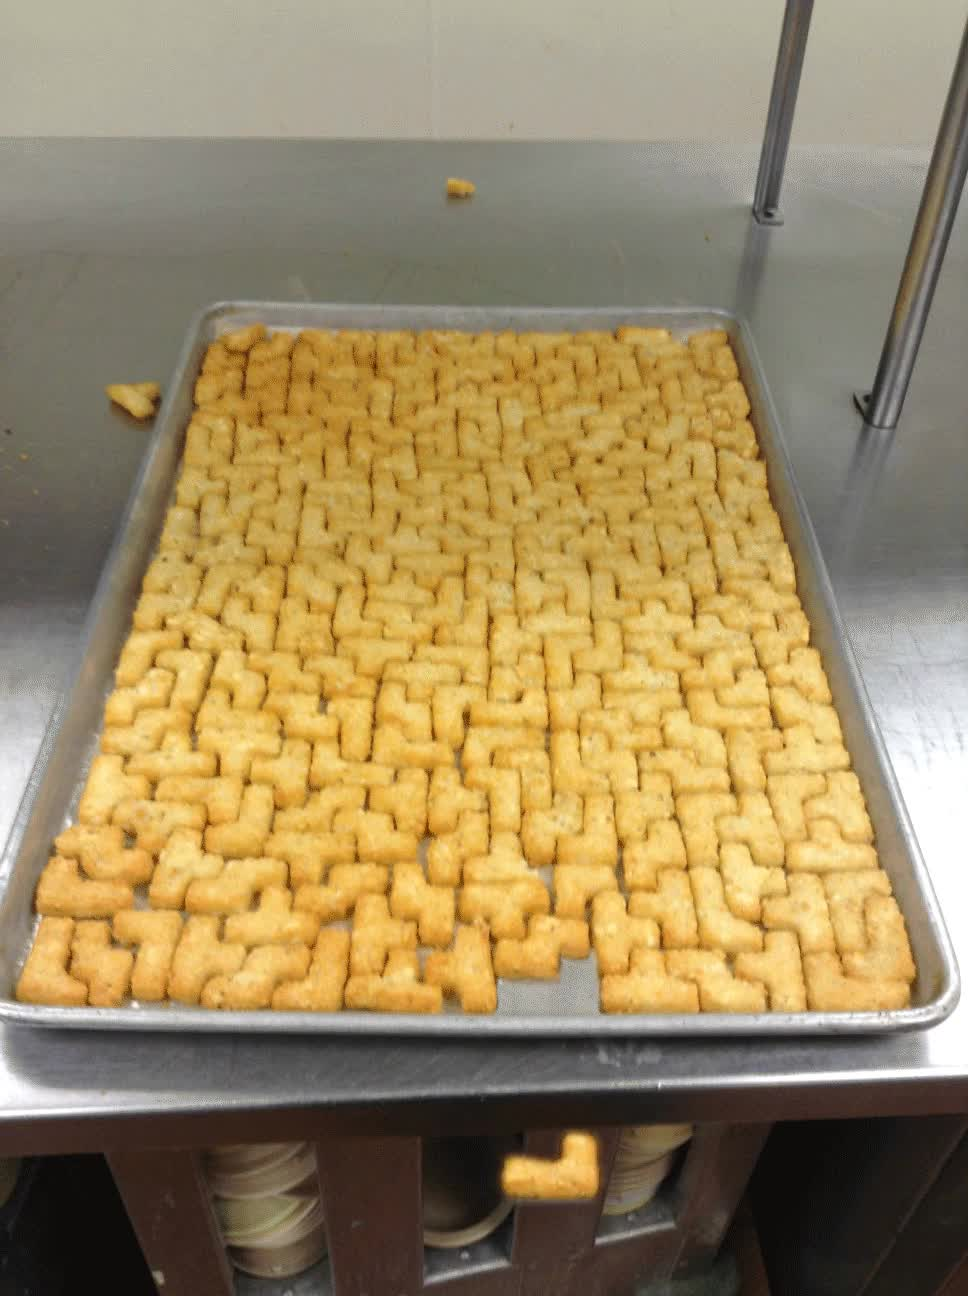 How these tater tots fit together. : oddlysatisfying GIFs